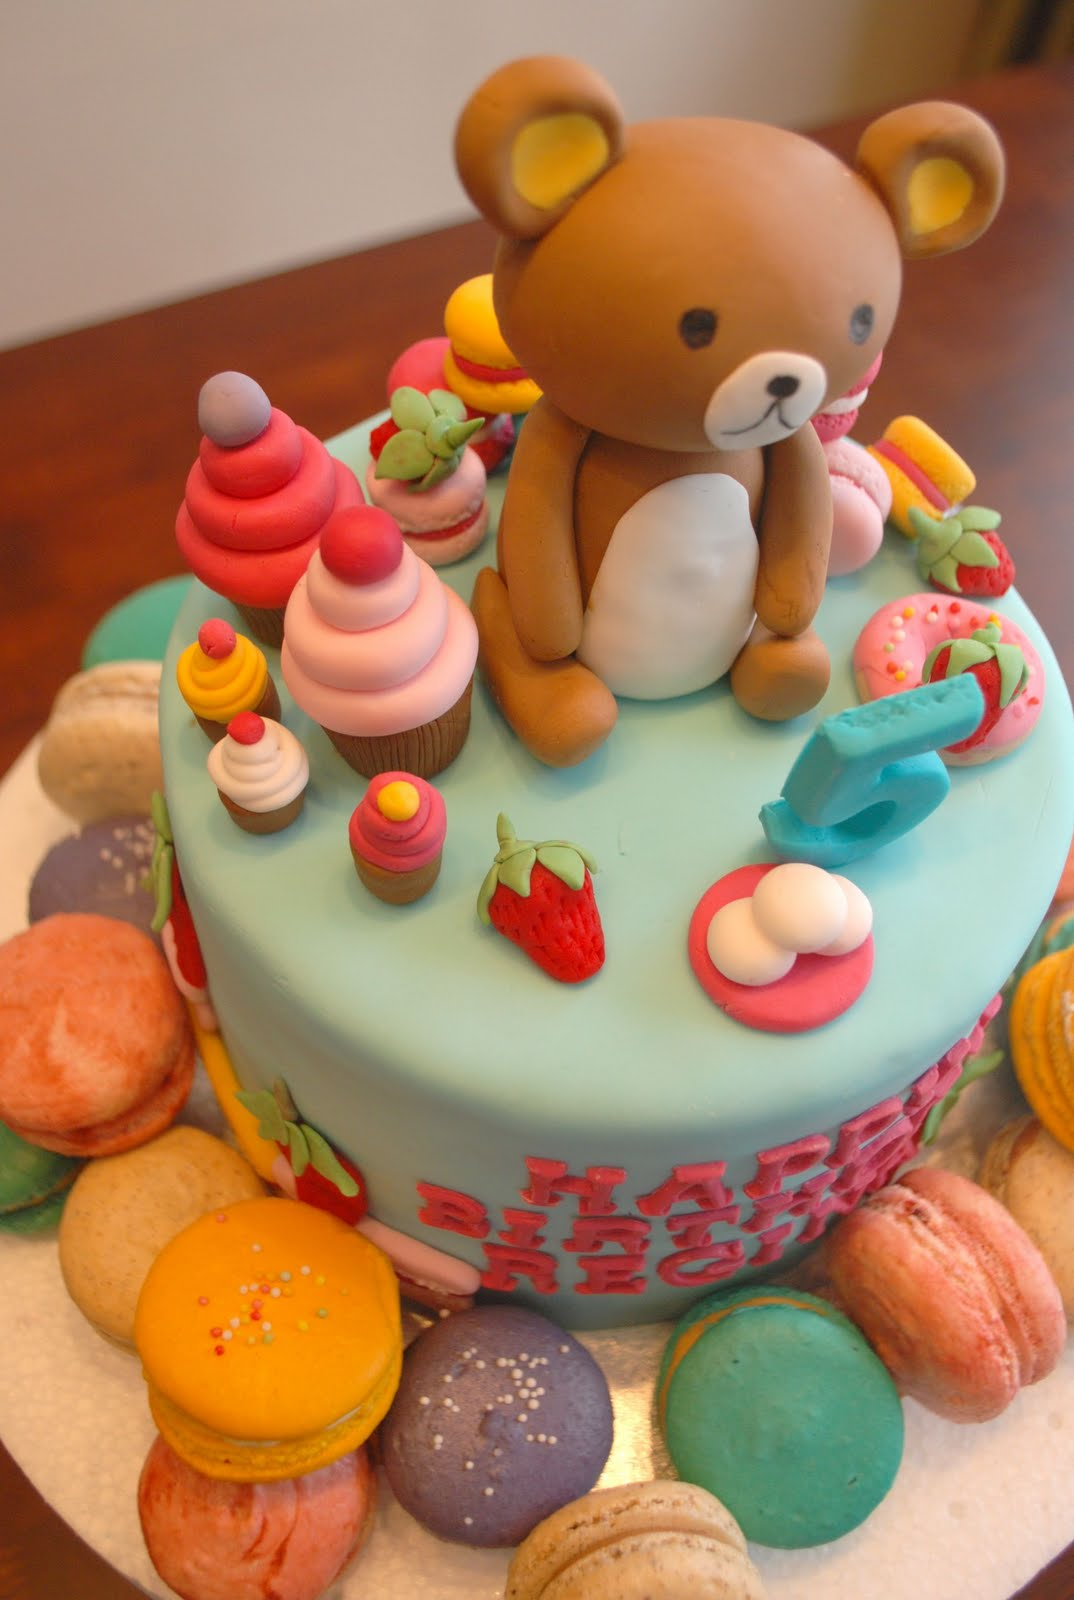 Rilakkuma Likes Eating Sweets And Cakes So We Surround With All Things She Loves As Well A Stack Of Macarons Along The Side